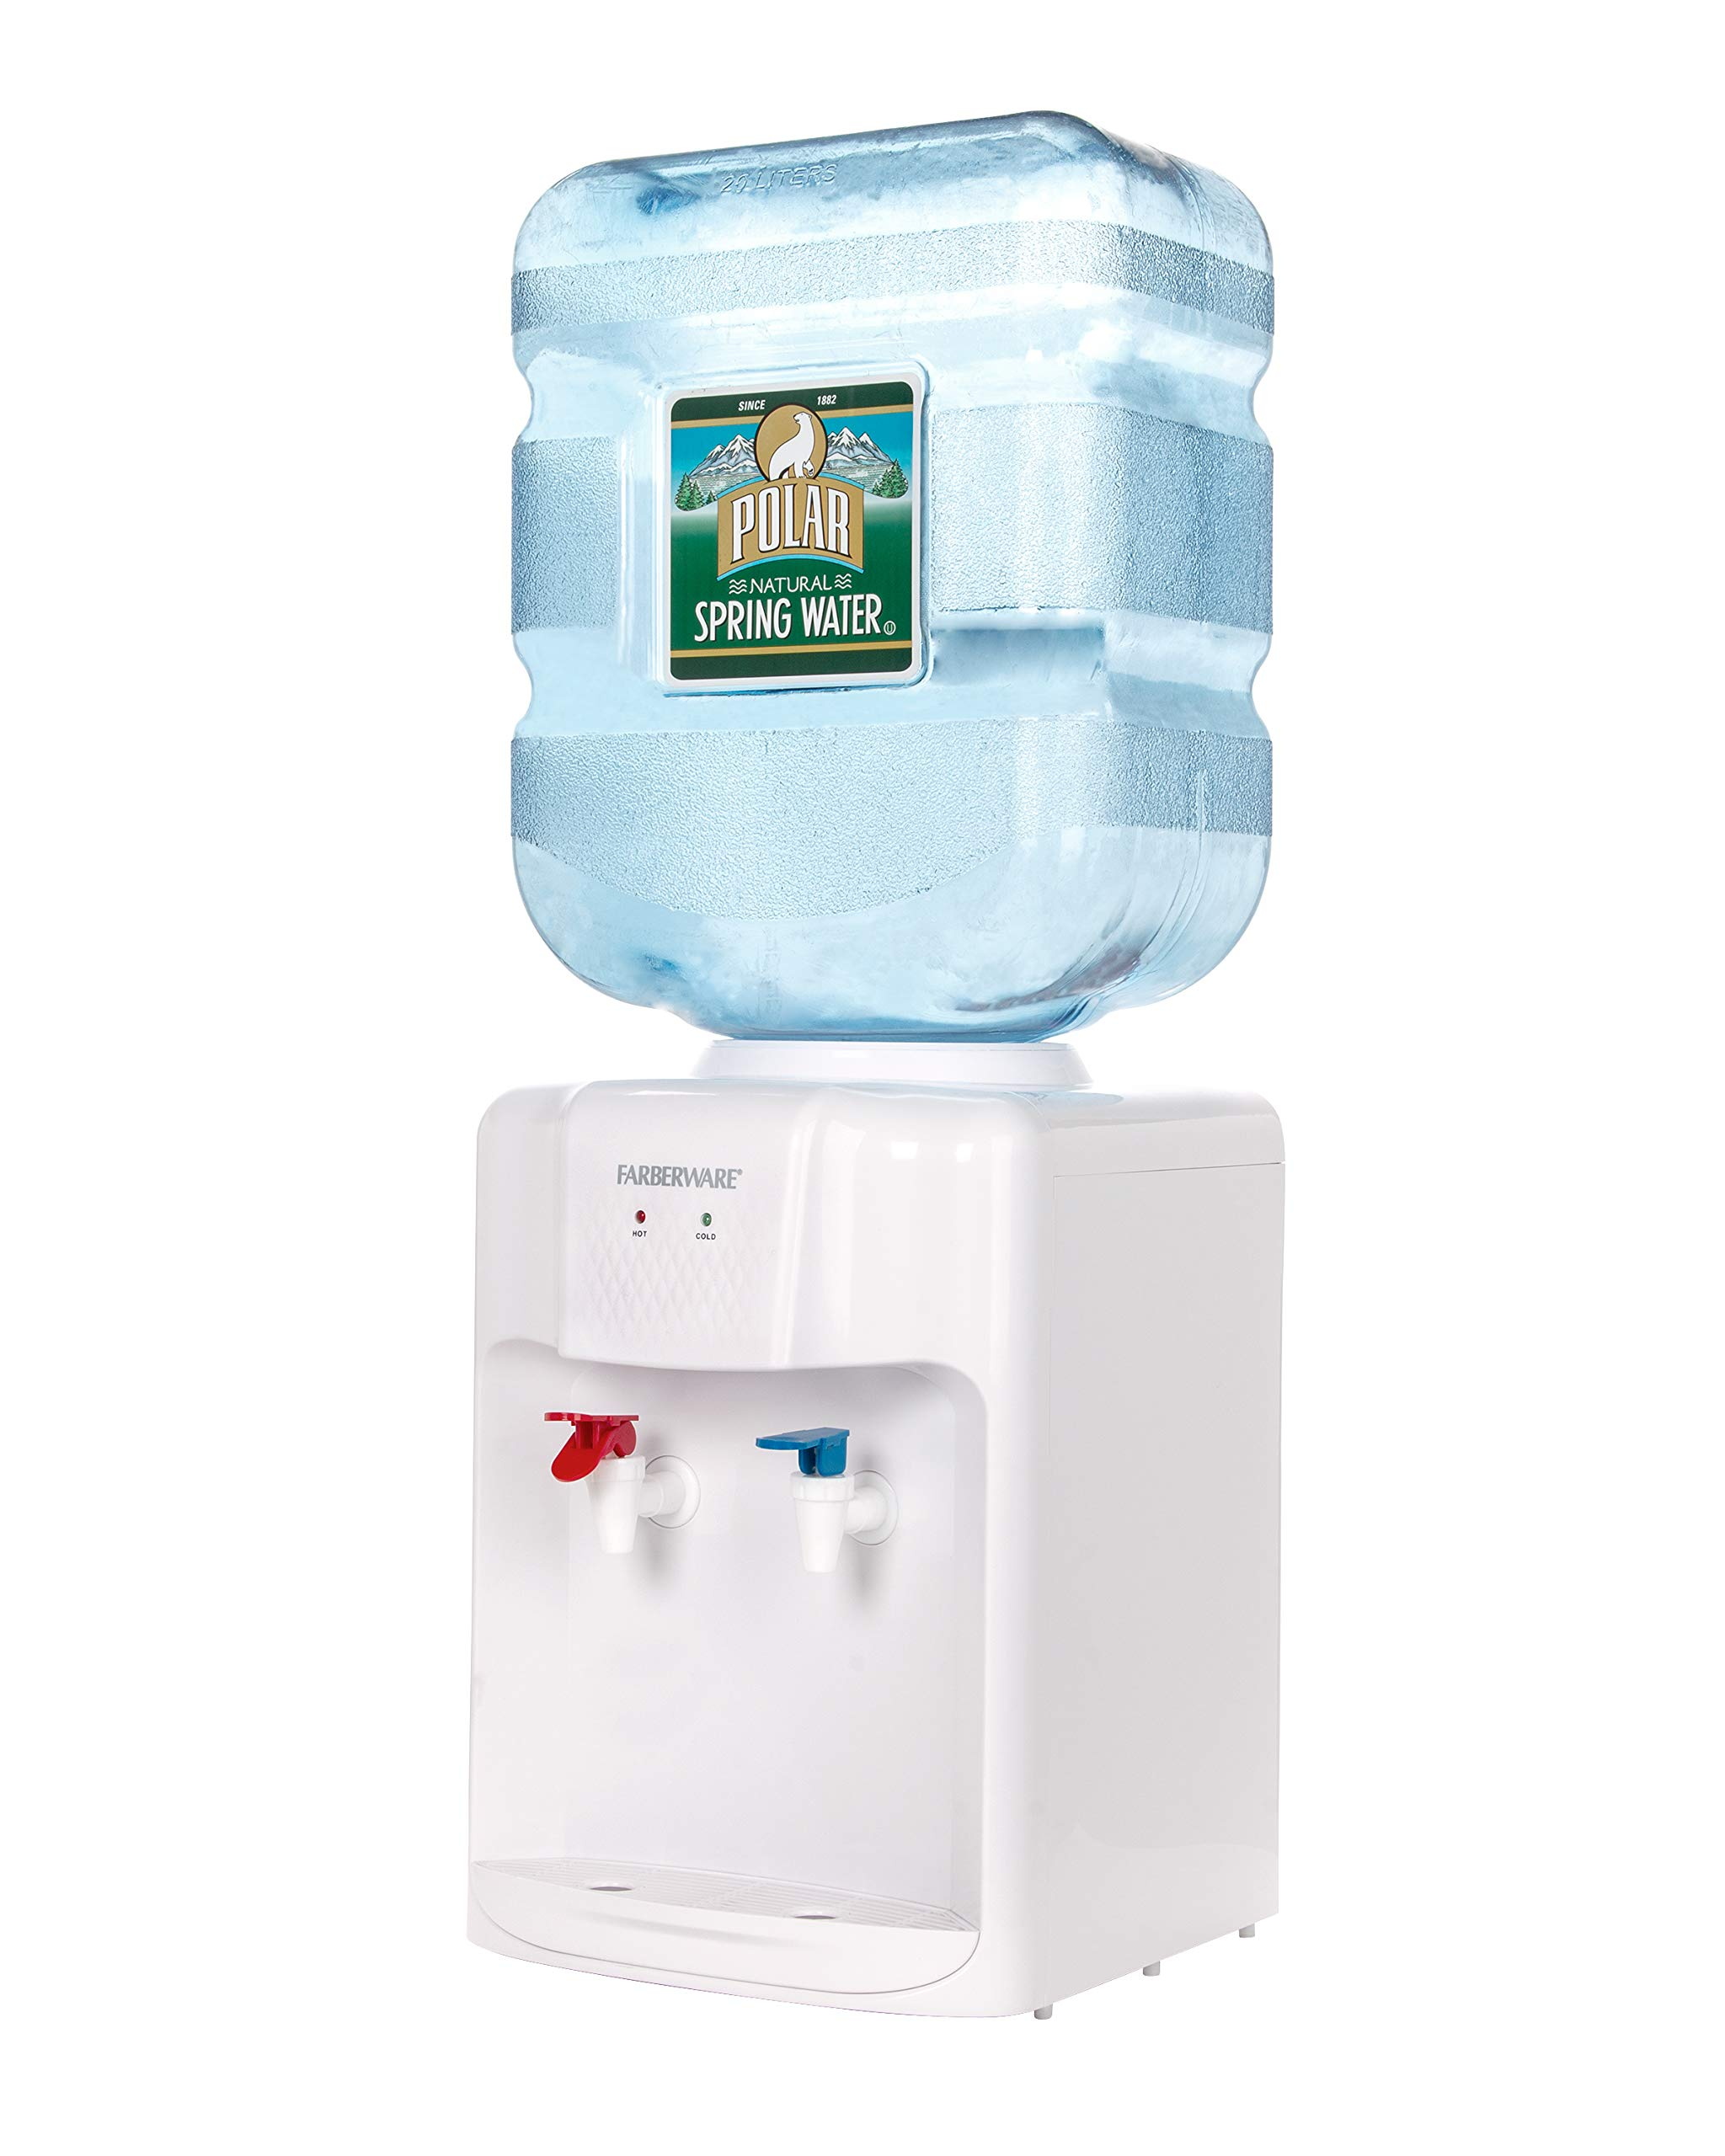 Farberware FW-WD211 Freestanding Hot and Cold Water Cooler Dispenser, Countertop White